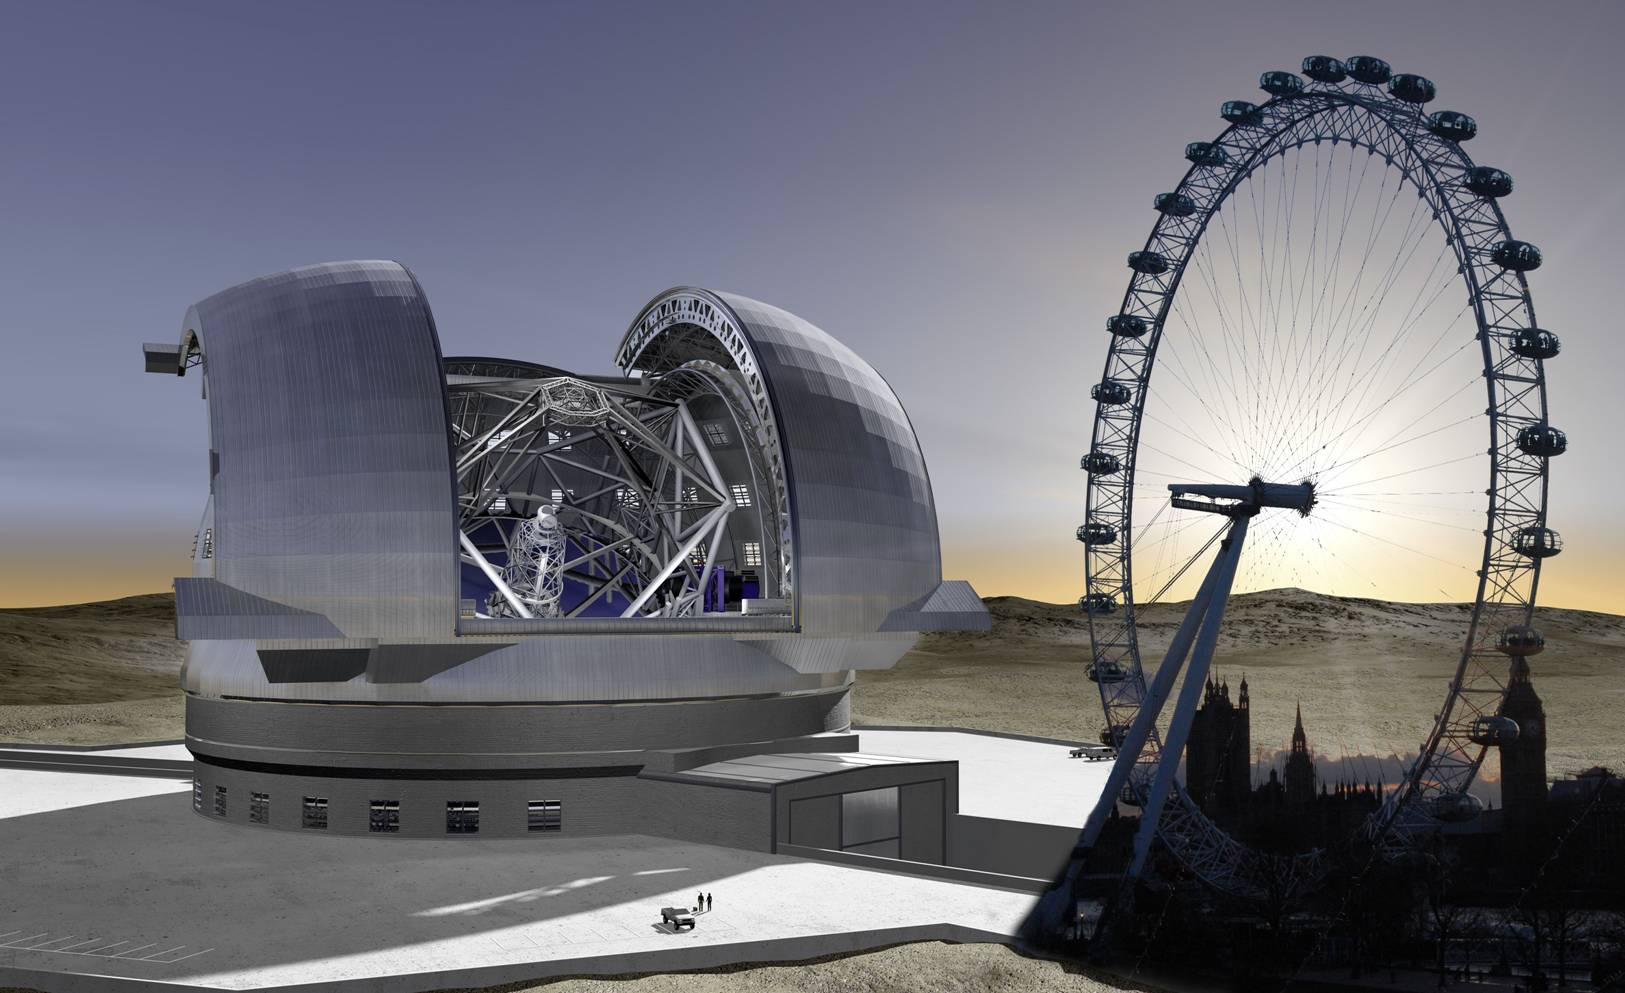 Preliminary E-ELT Concept Image with London Eye, courtesy of ESO/H. Zodet & STFC/Jason Cowan.